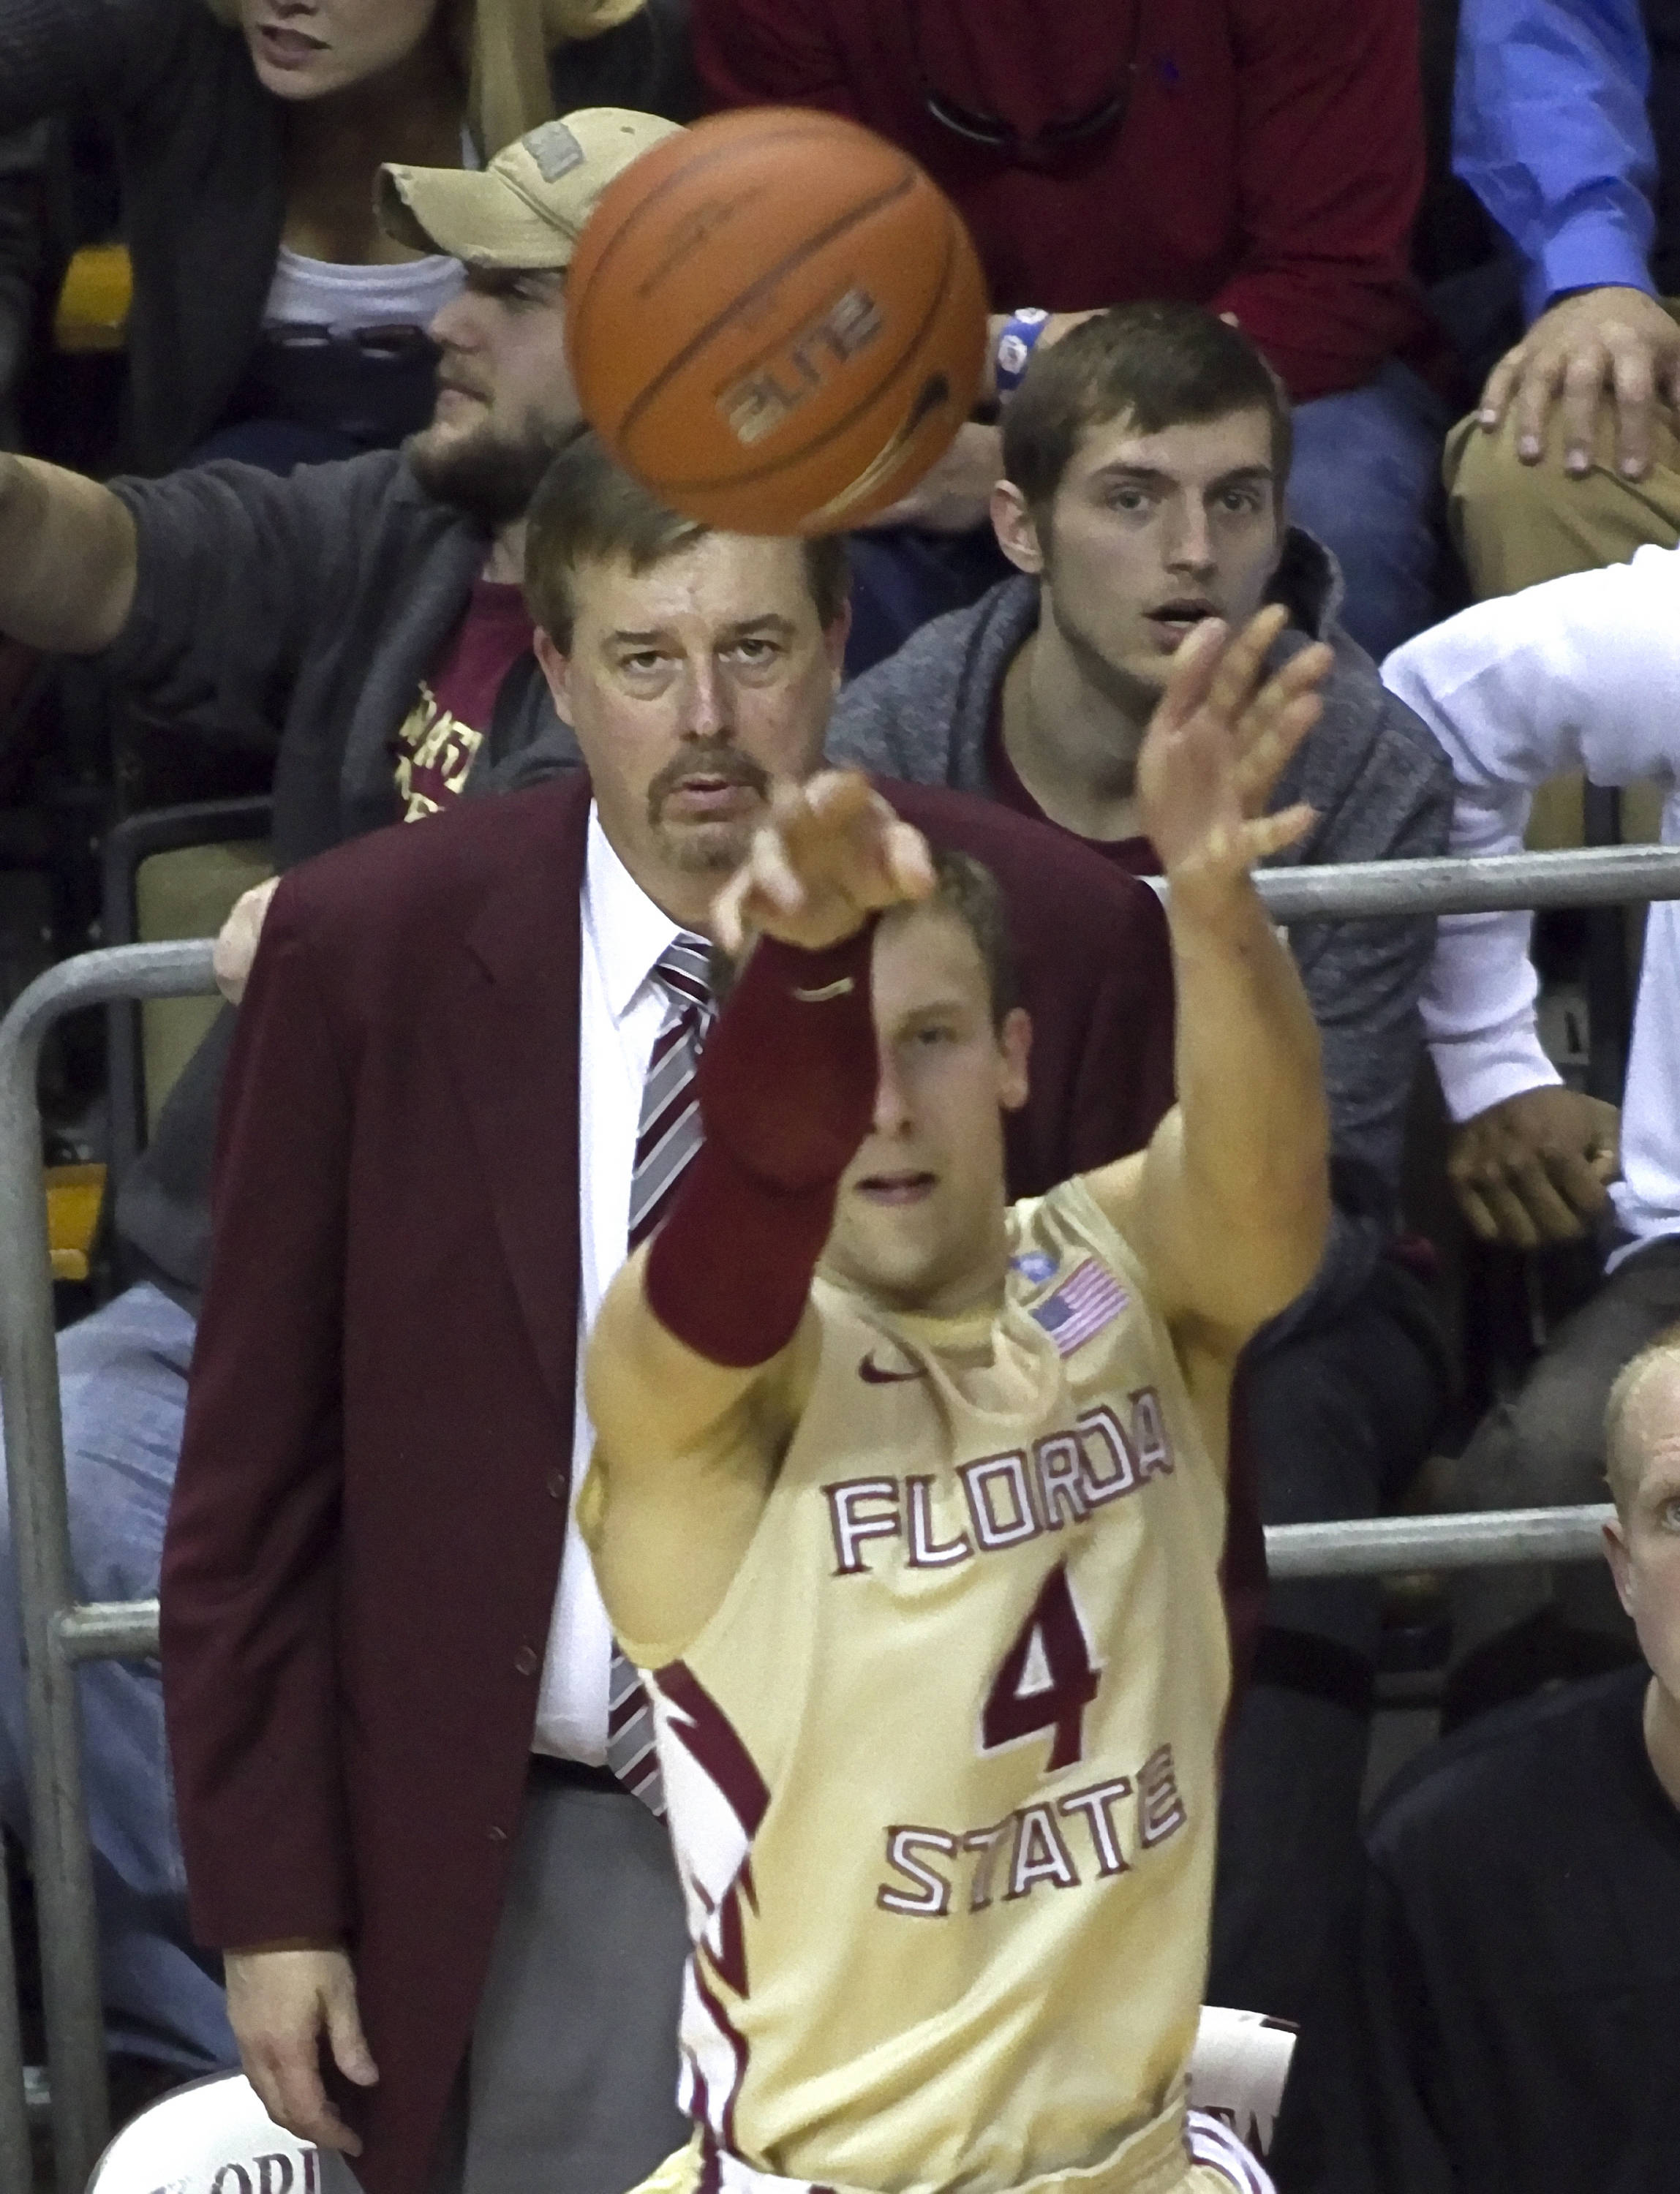 Coach Stan Jones, Devidas Dulkys (4), FSU vs NC,  01/14/2012